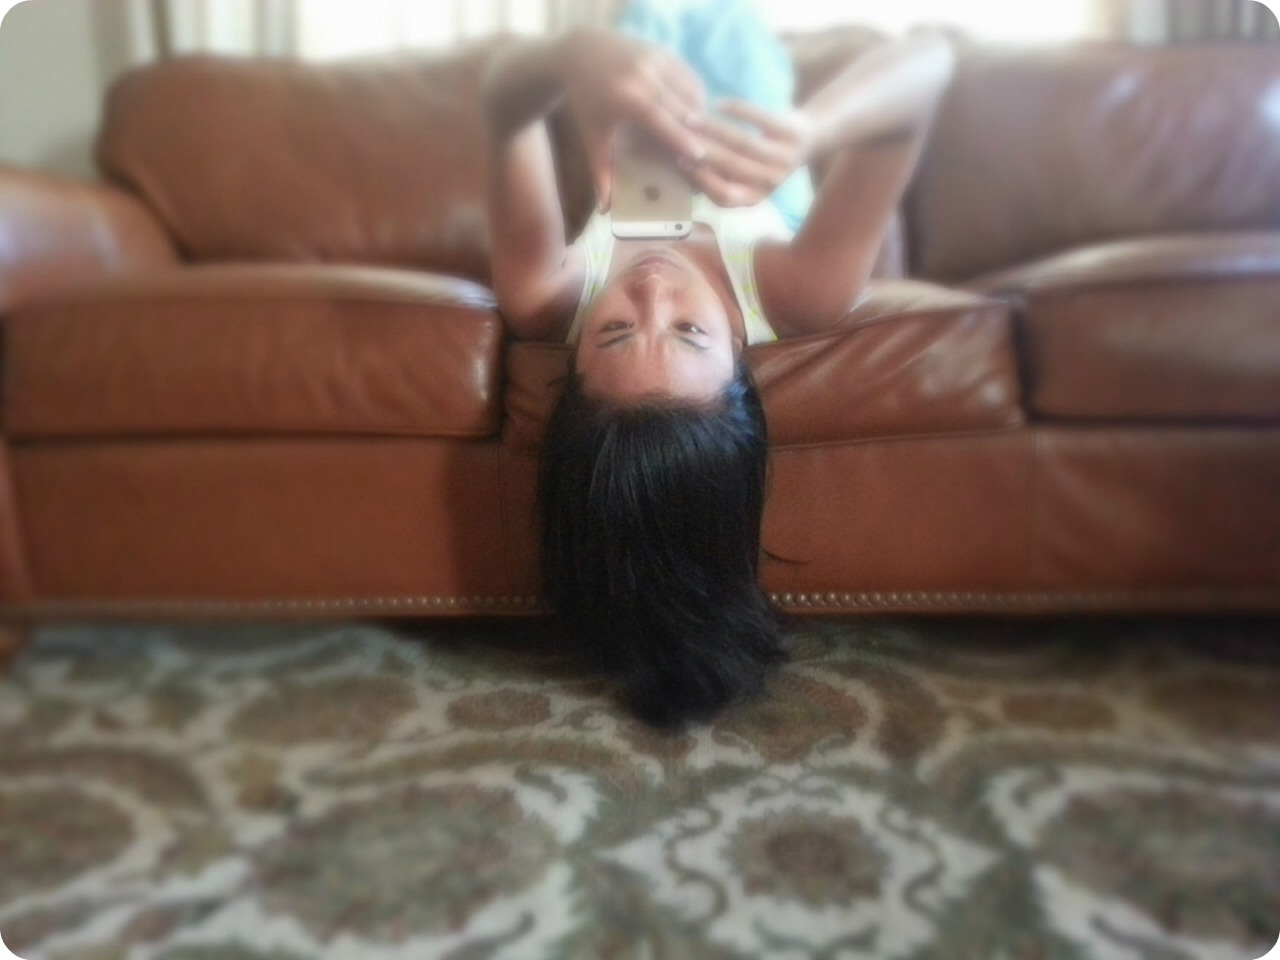 Turn your head upside down